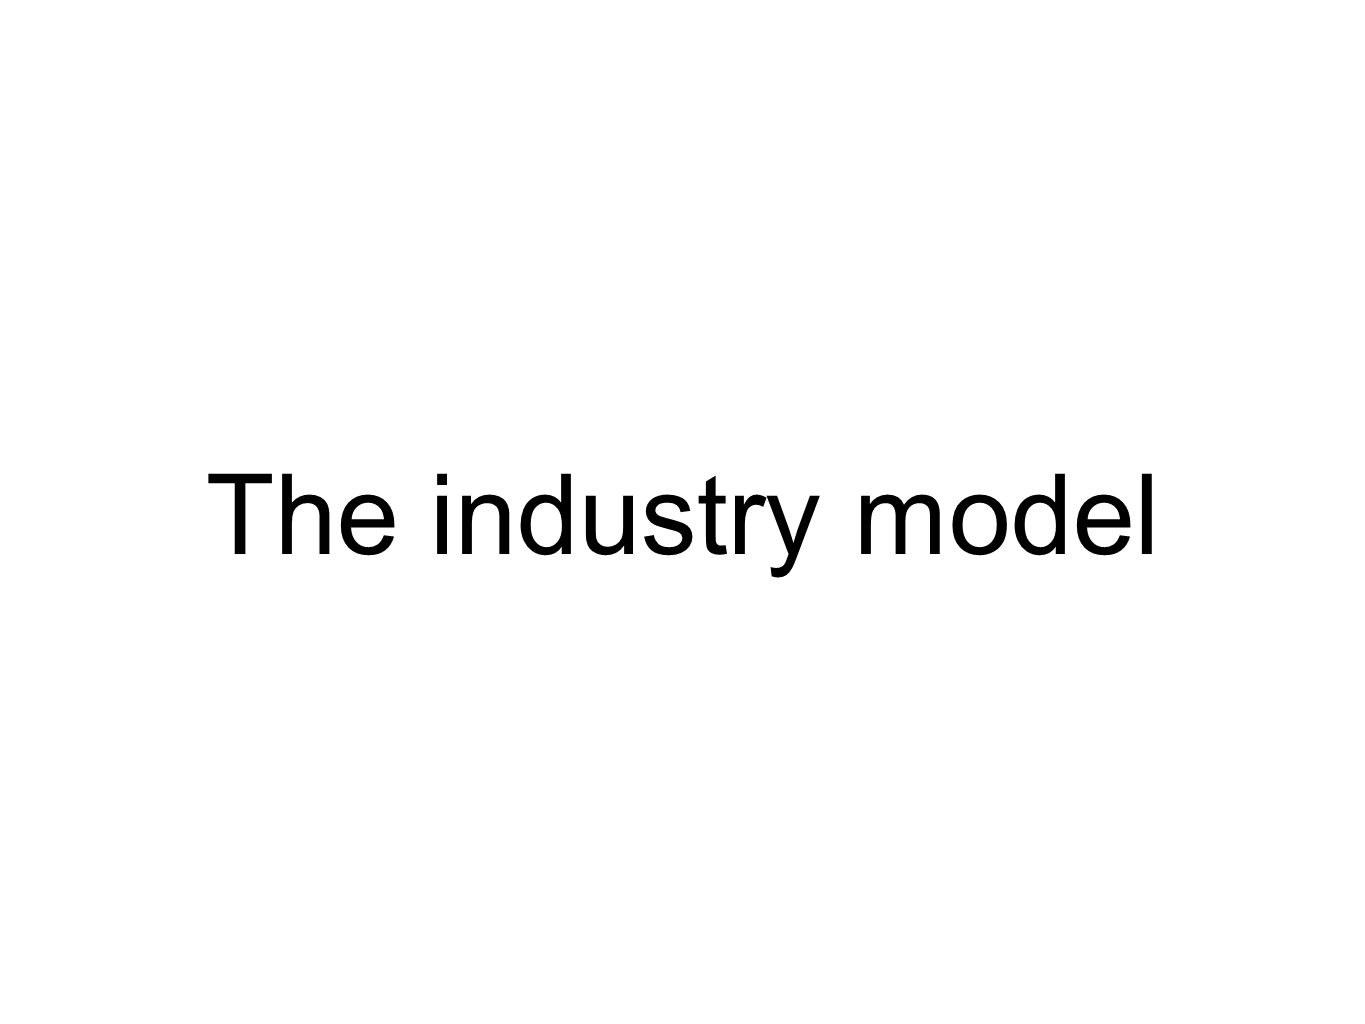 The industry model